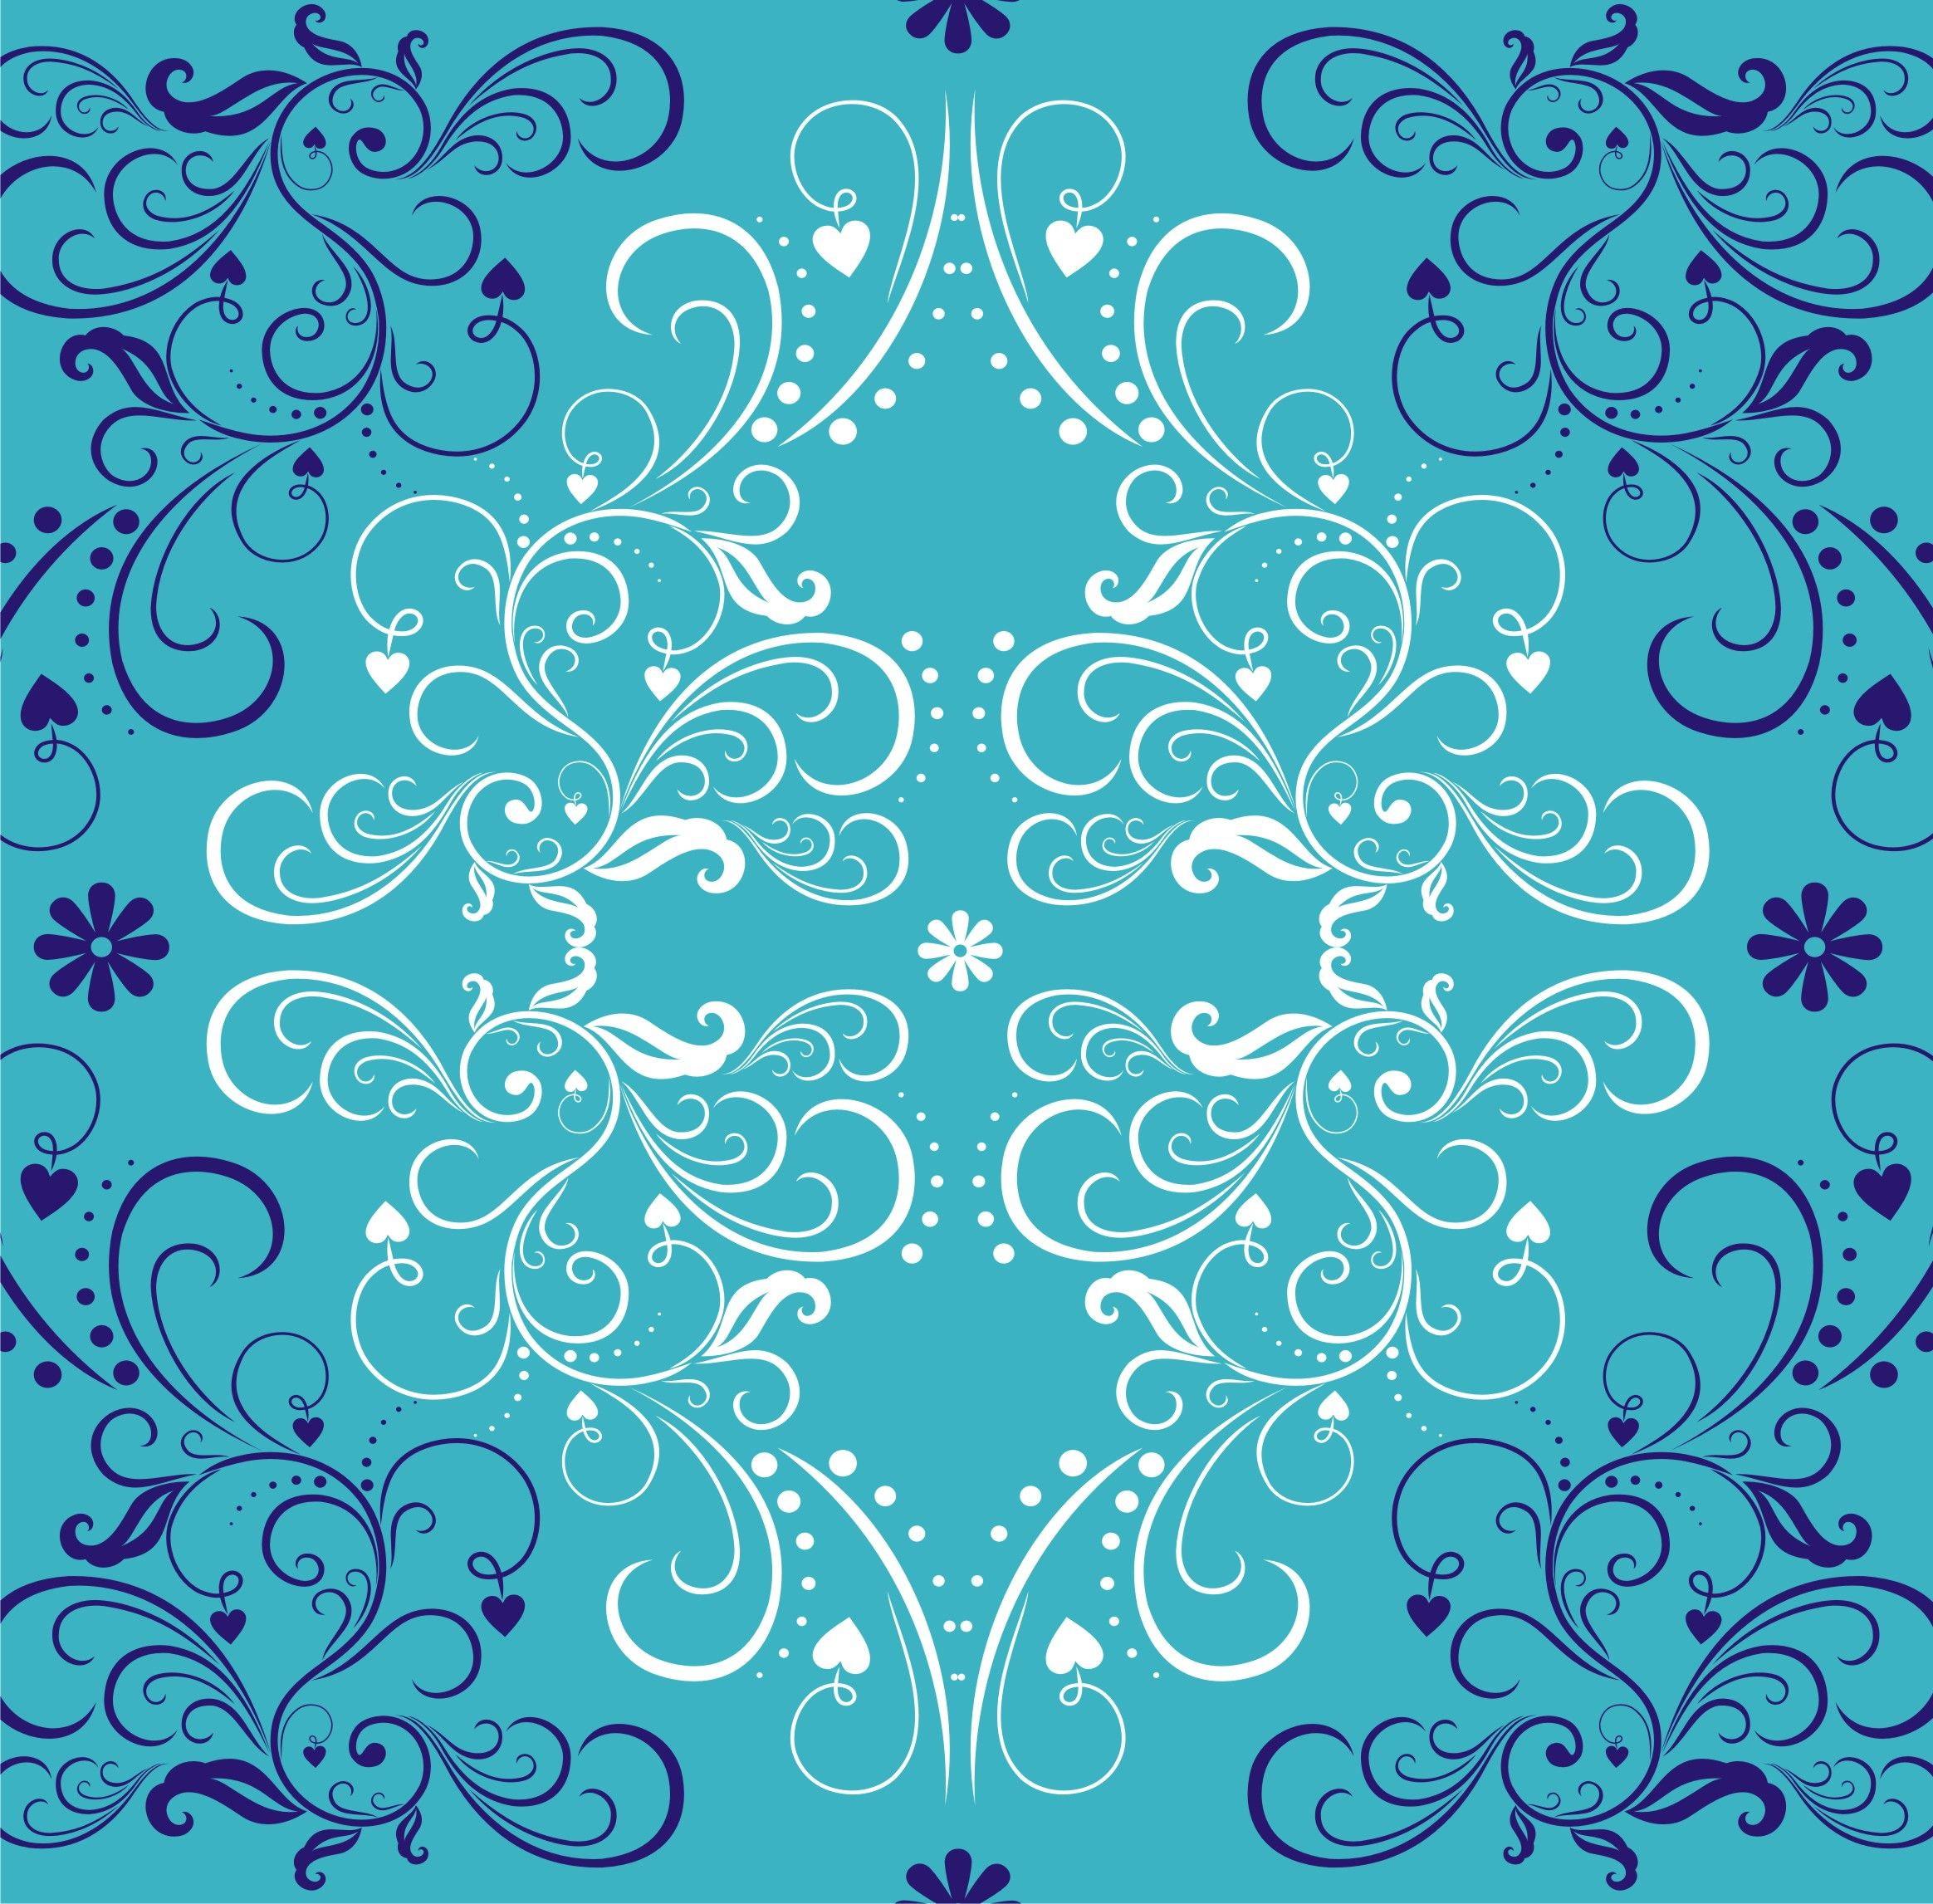 free vector 5 european pattern vector graphic available